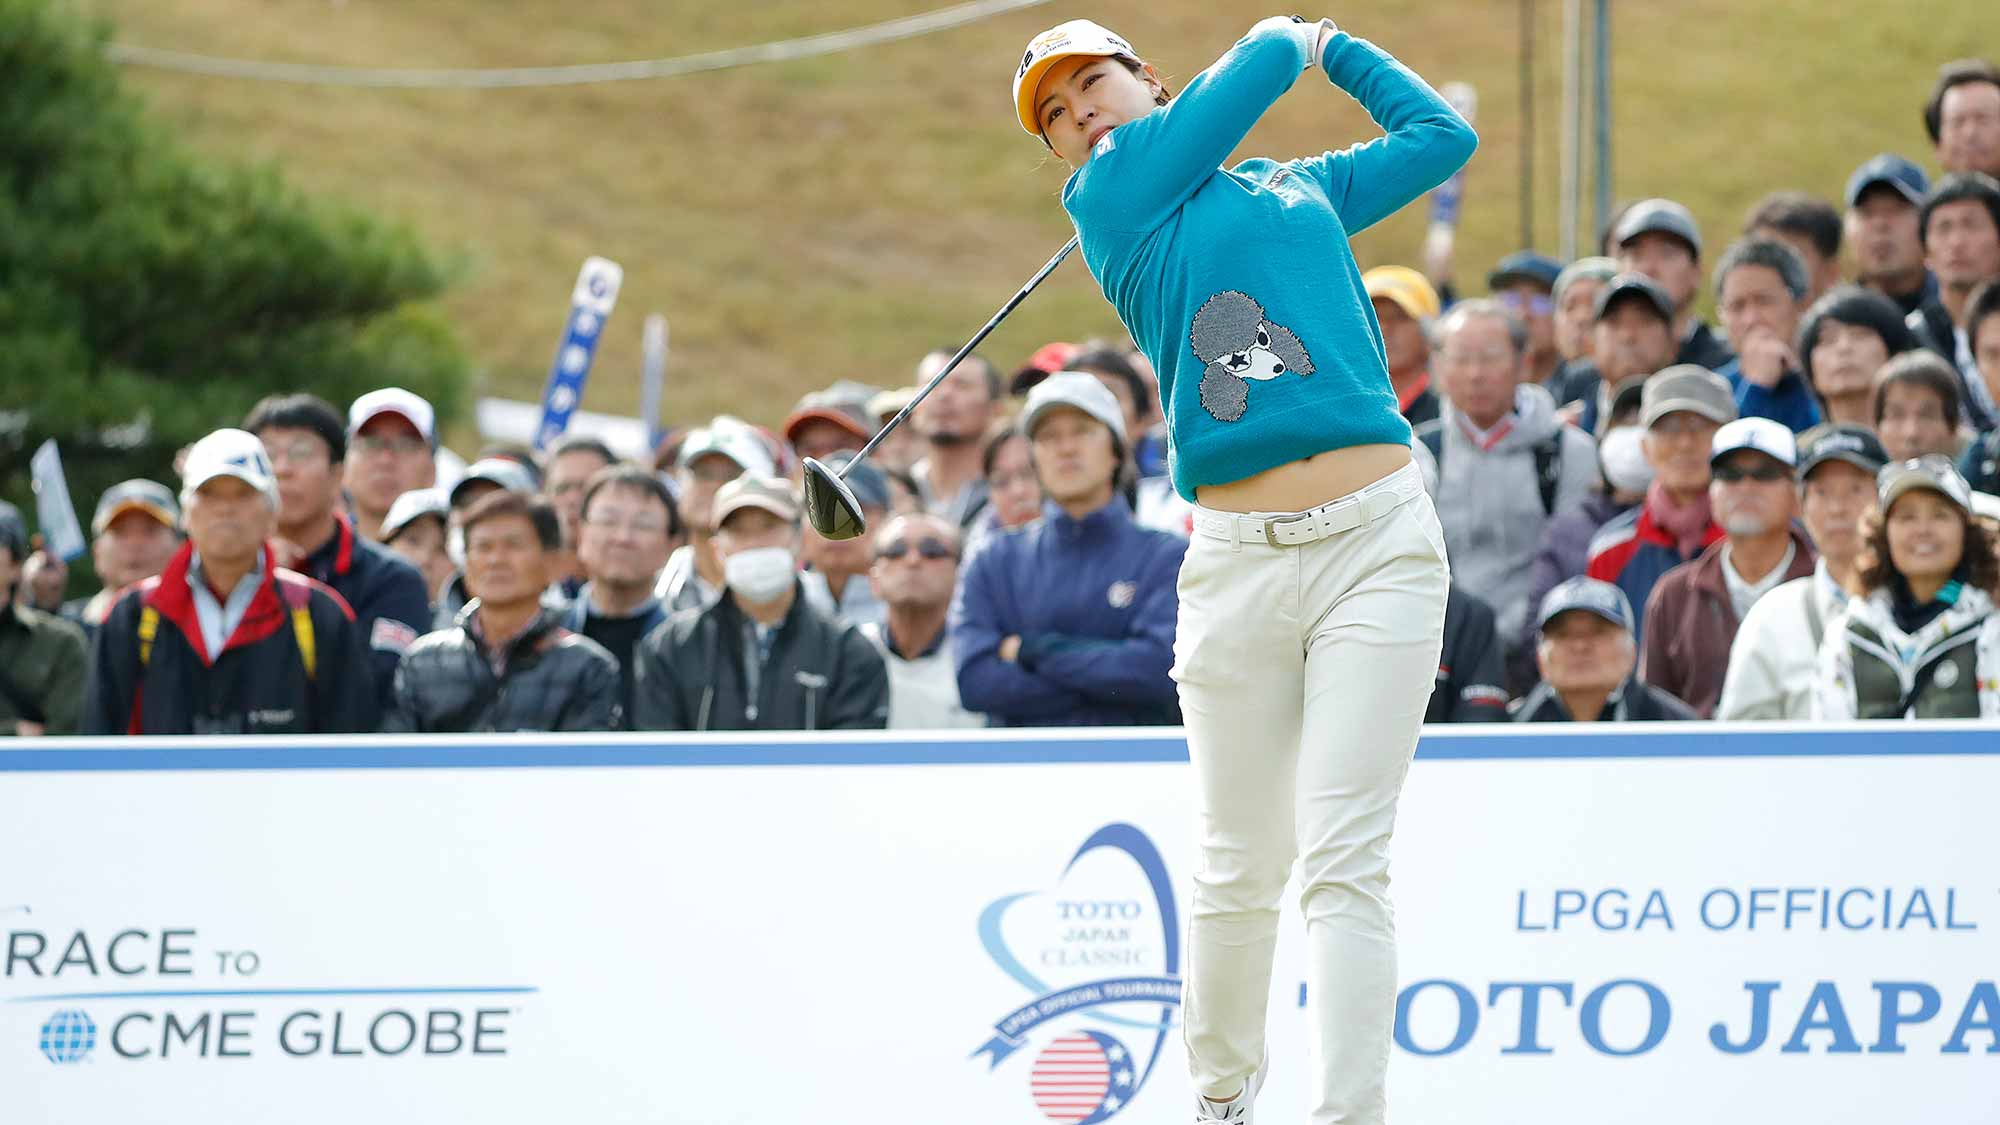 In Gee Chun of South Korea hits a tee shot on the first hole during the first round of the TOTO Japan Classic at Seta Golf Course on November 02, 2018 in Otsu, Shiga, Japan